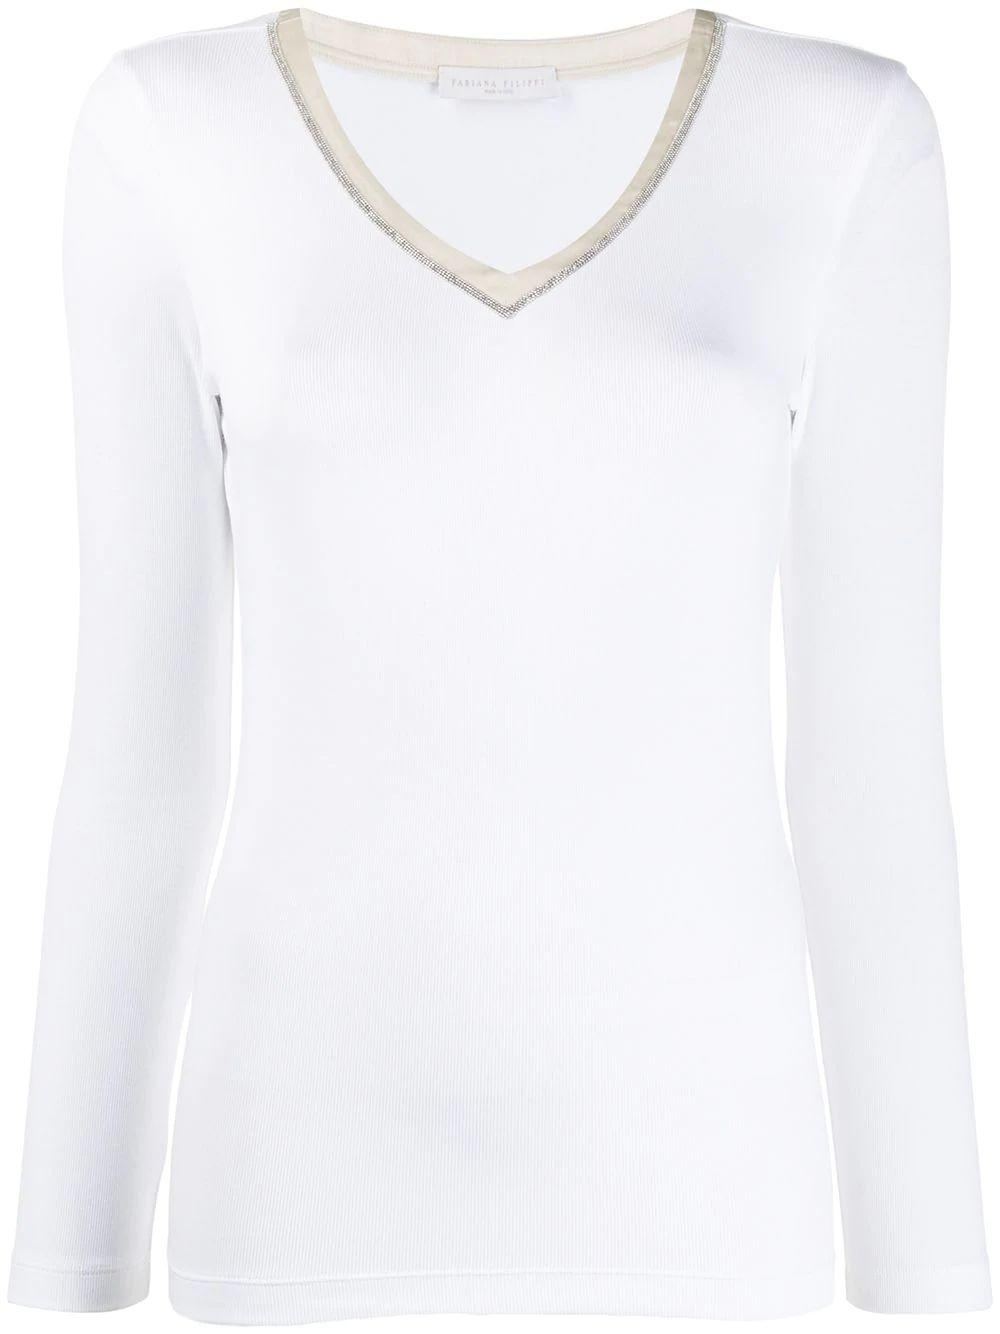 Long Sleeve V- Neck Ribbed Cotton Top Item # JED260W453